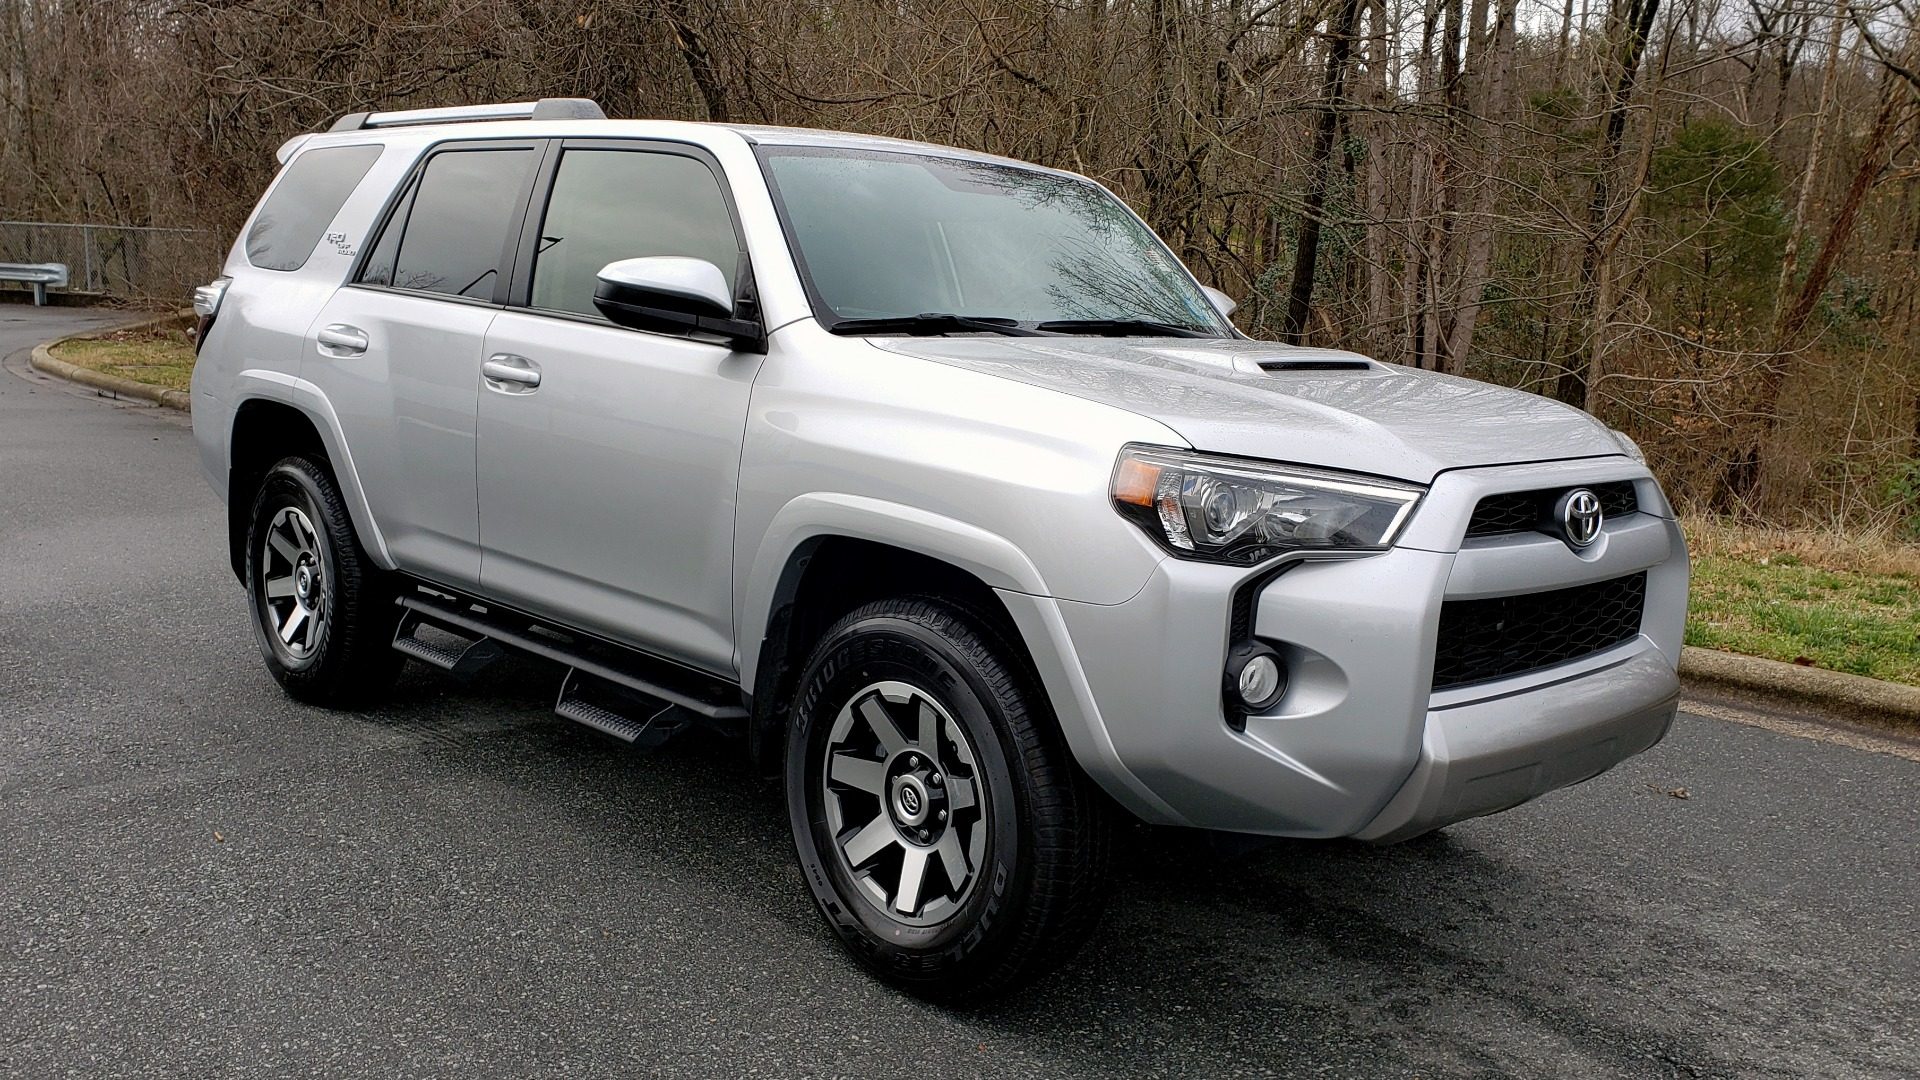 Used 2018 Toyota 4RUNNER TRD OFF-ROAD 4X4 / V6 / AUTO / LEATHER / LOW MILES! for sale Sold at Formula Imports in Charlotte NC 28227 4